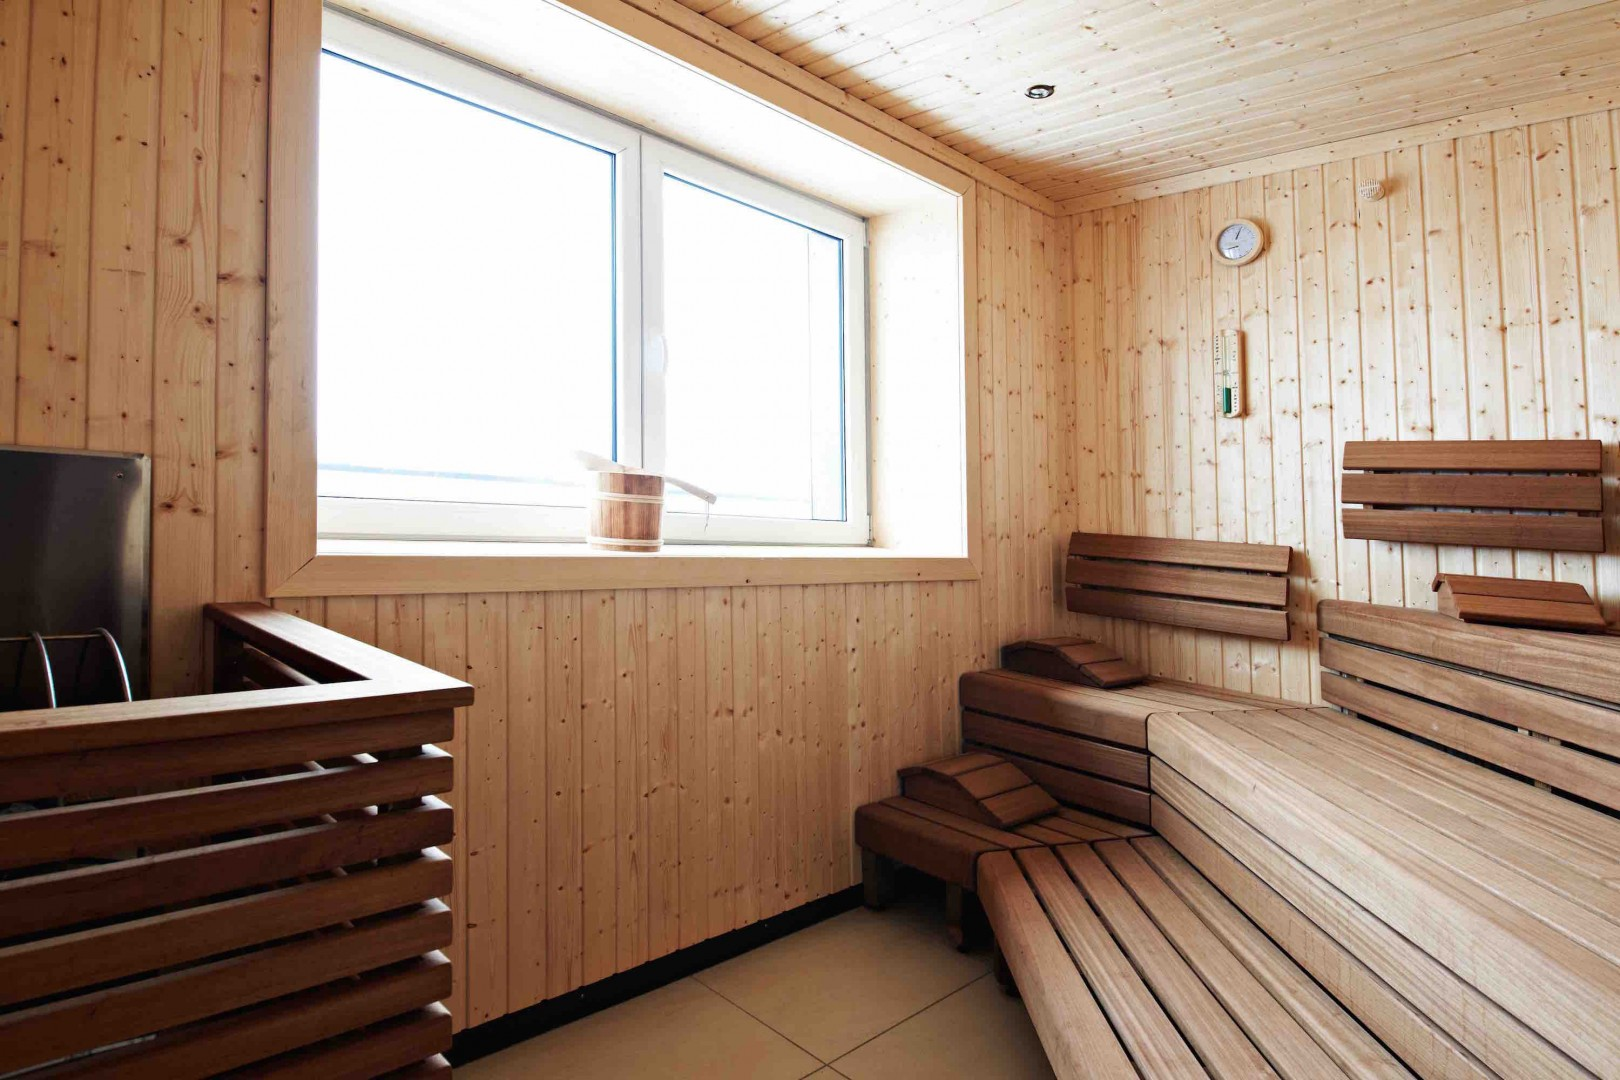 Sauna at the Young Generation Resort Buchegg